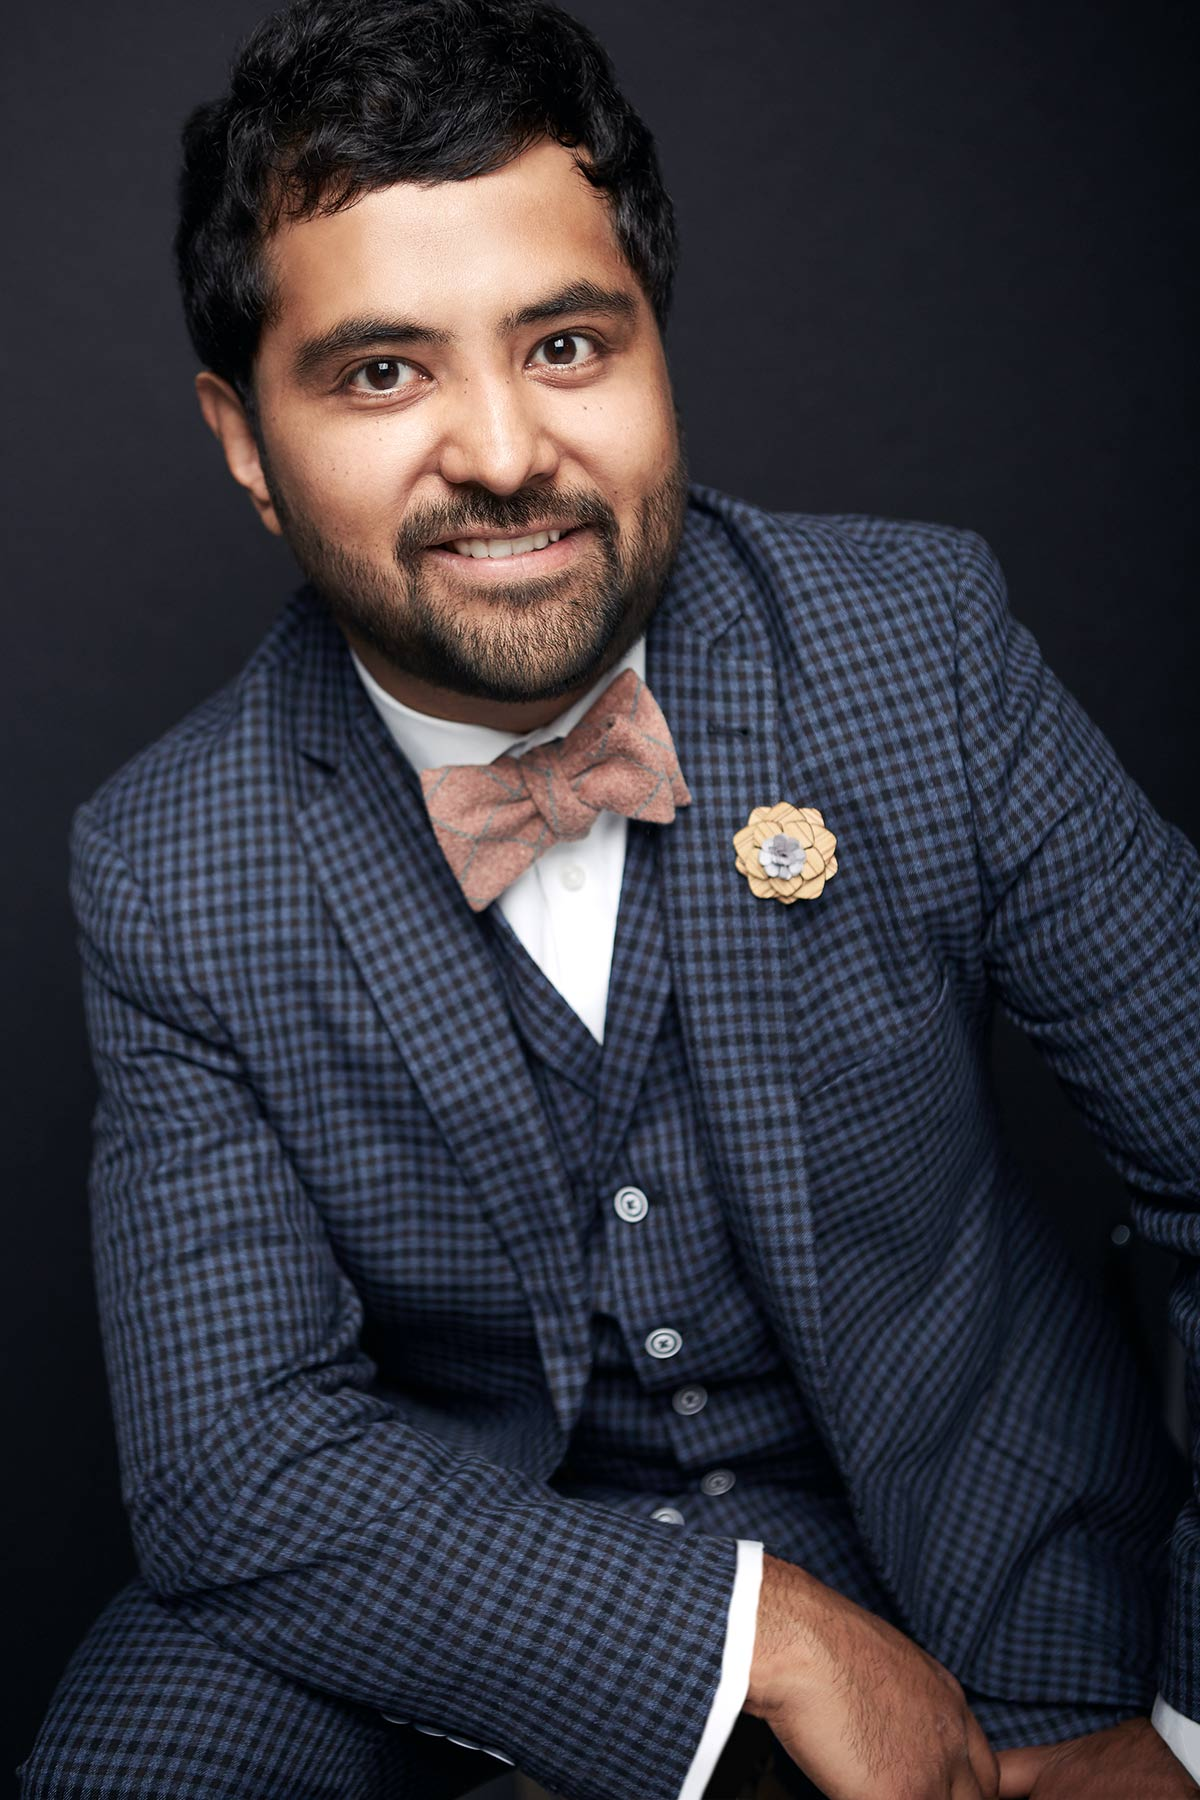 Headshot_Photographer_Chicago_Head_Shots_Best_Corporate_Professional_Modern_Bow_Tie_Tiny_Space_Studio